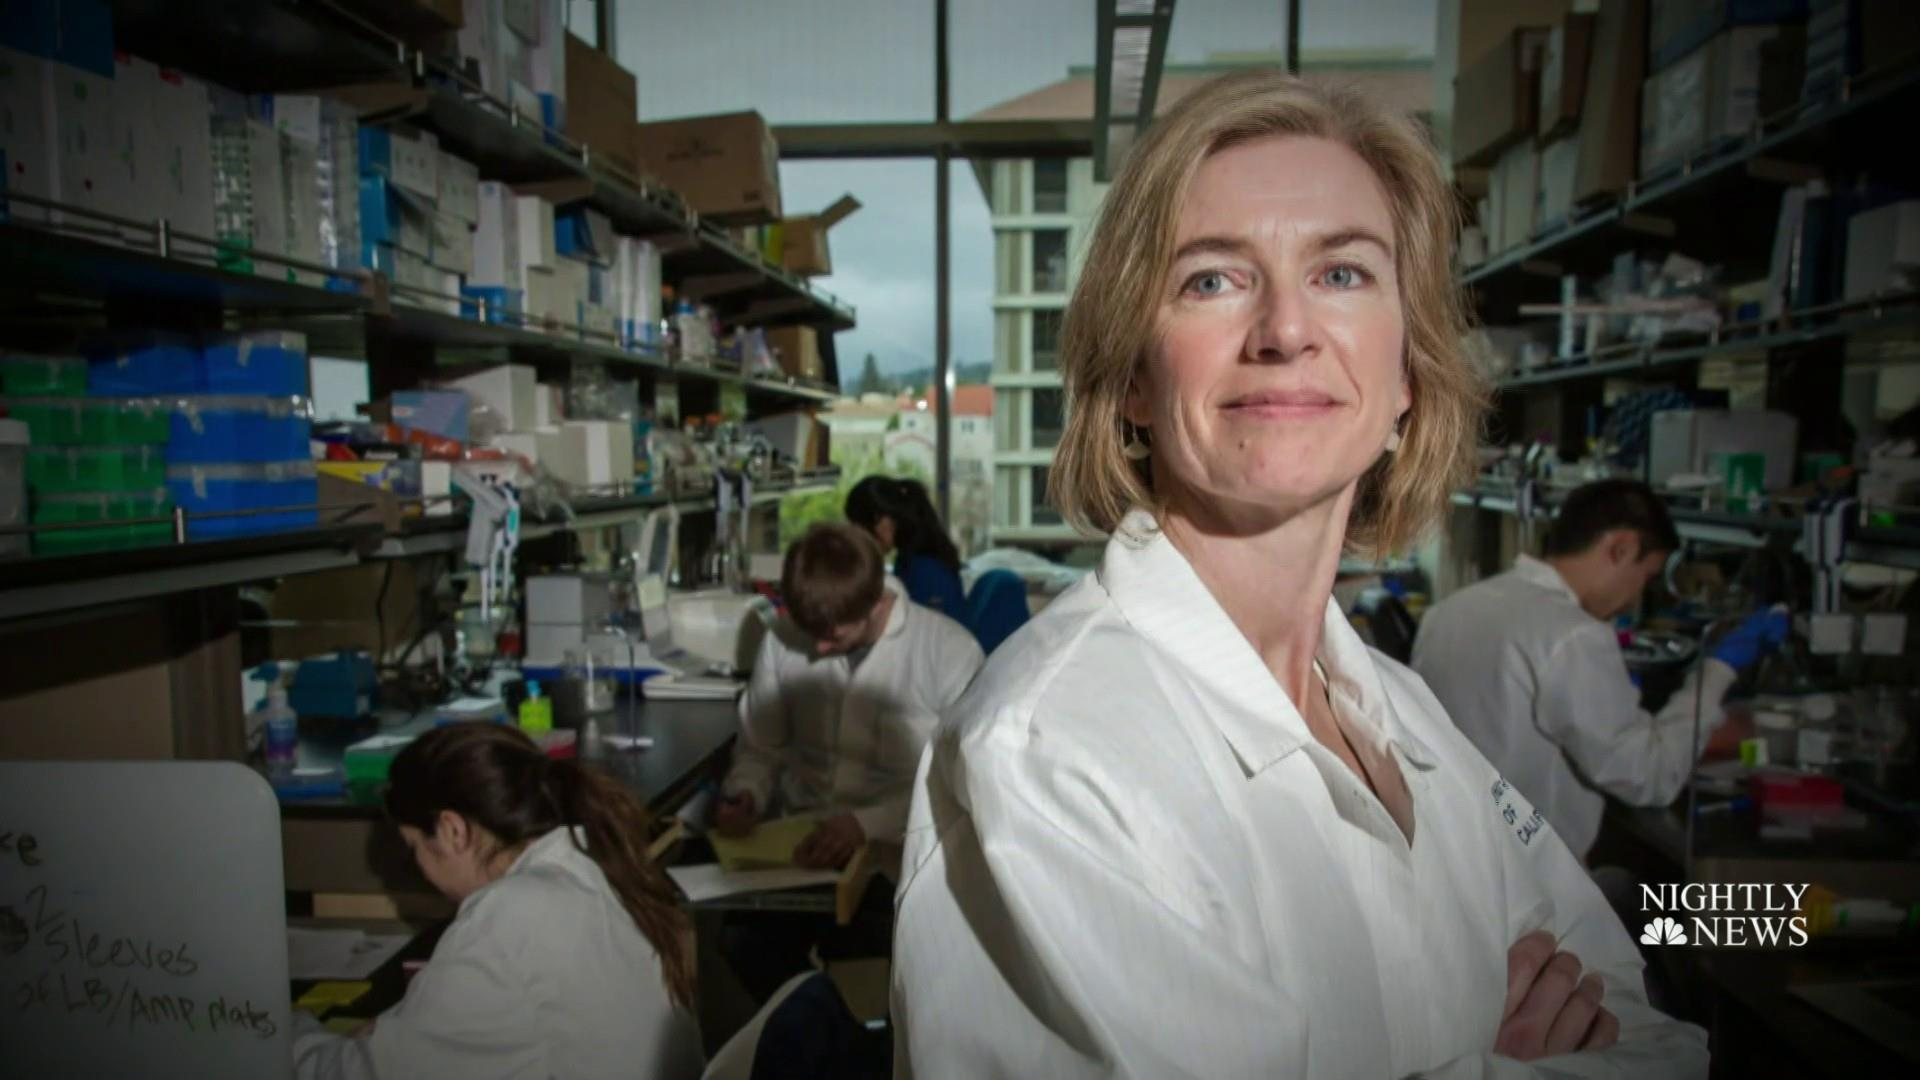 Nobel winner Jennifer Doudna's advice for young scientists: 'Go for it'